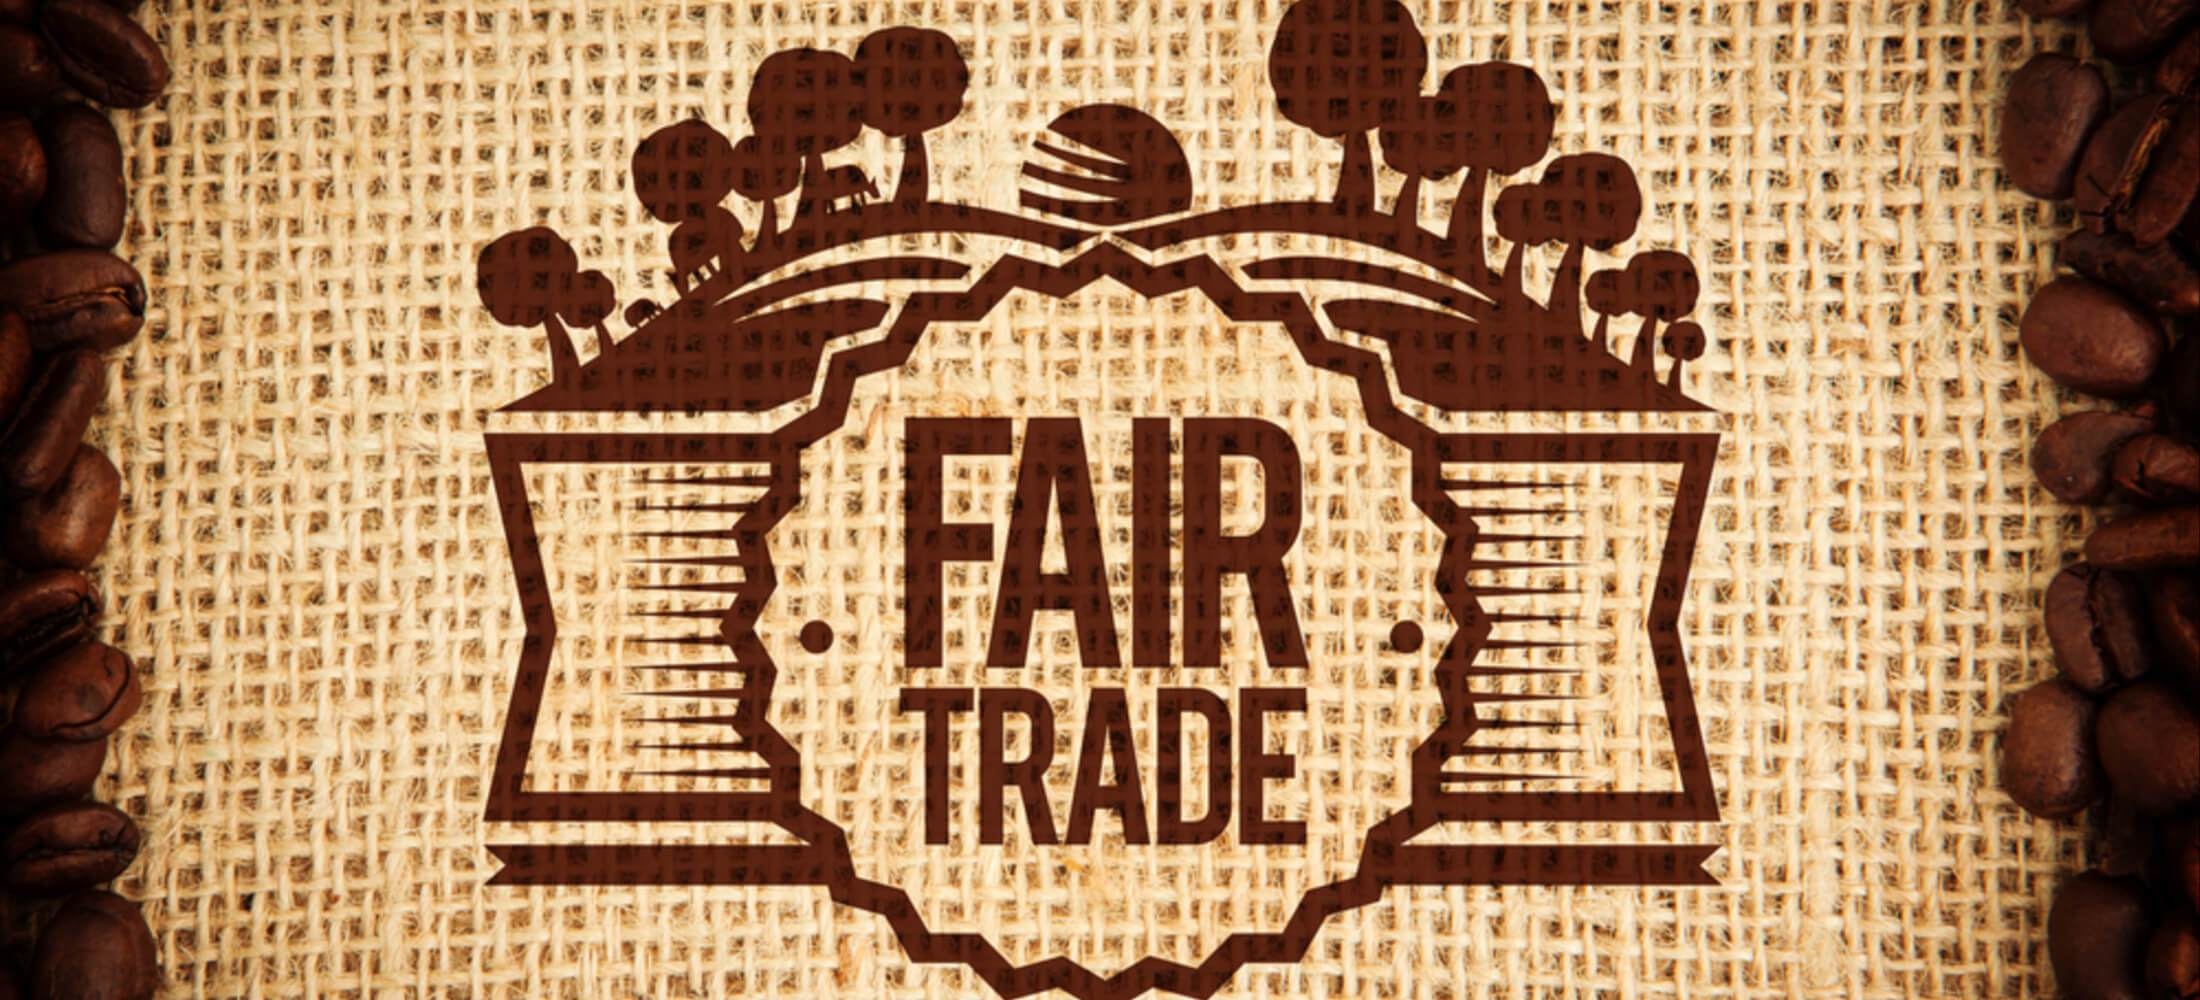 Fair Trade Coffee Benefits Communities and the Environment